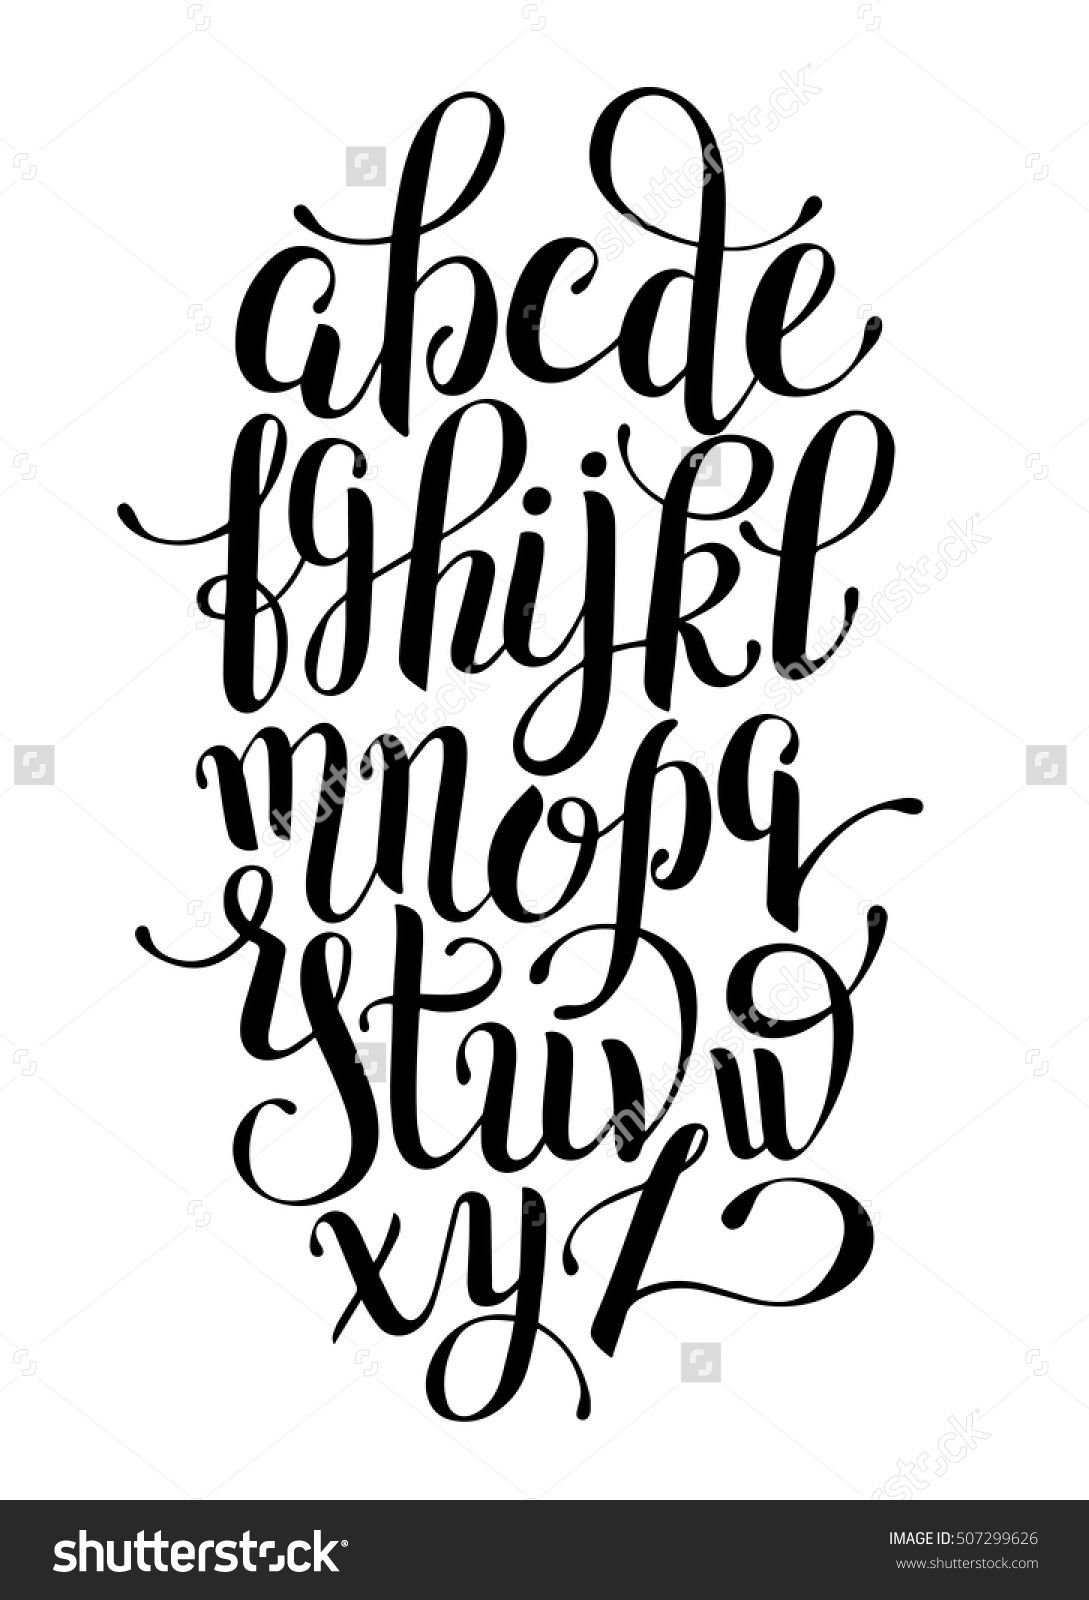 Black And White Hand Lettering Alphabet Design Handwritten Brush Script Modern Calligraphy Cursive Font Vector Illustration